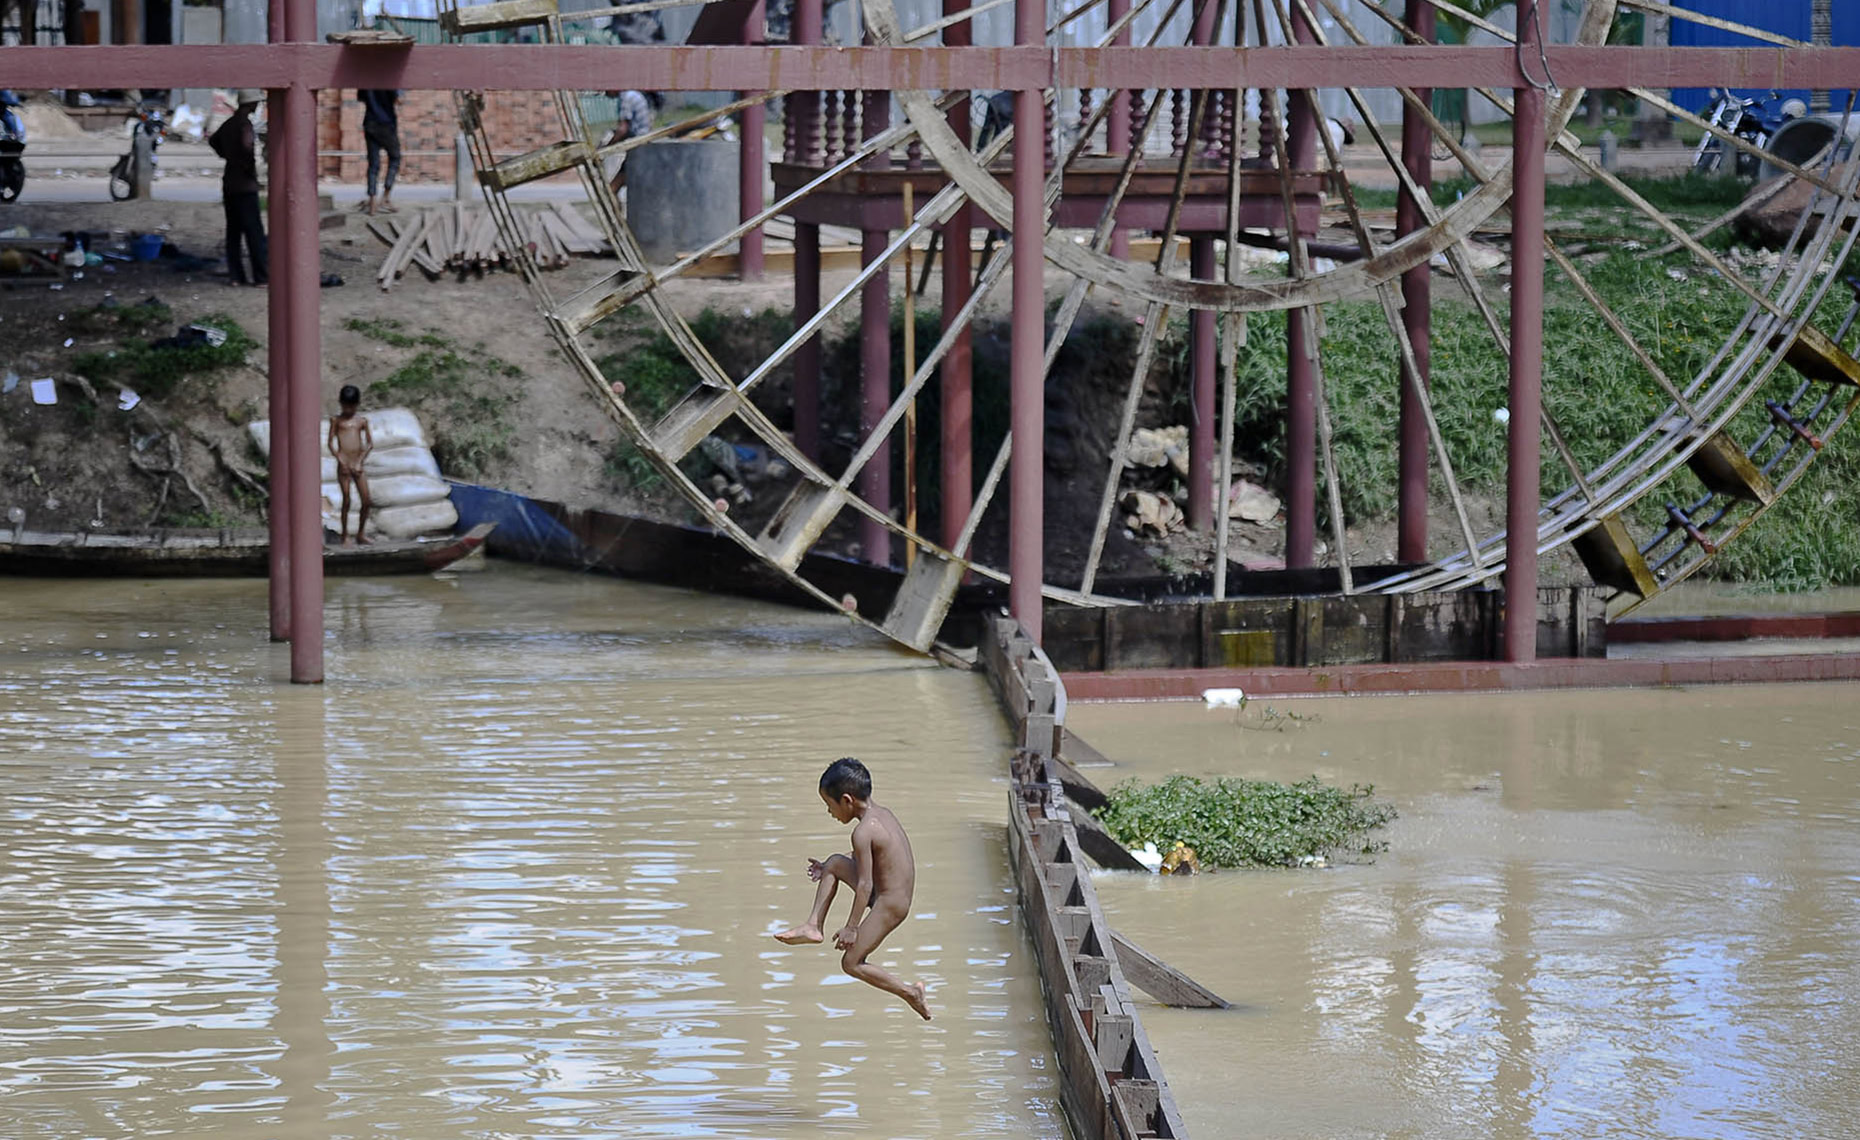 TRA_PhotoReporters_boy-jumping-into-river-to-cool-off_Siem-Reap_Cambodia